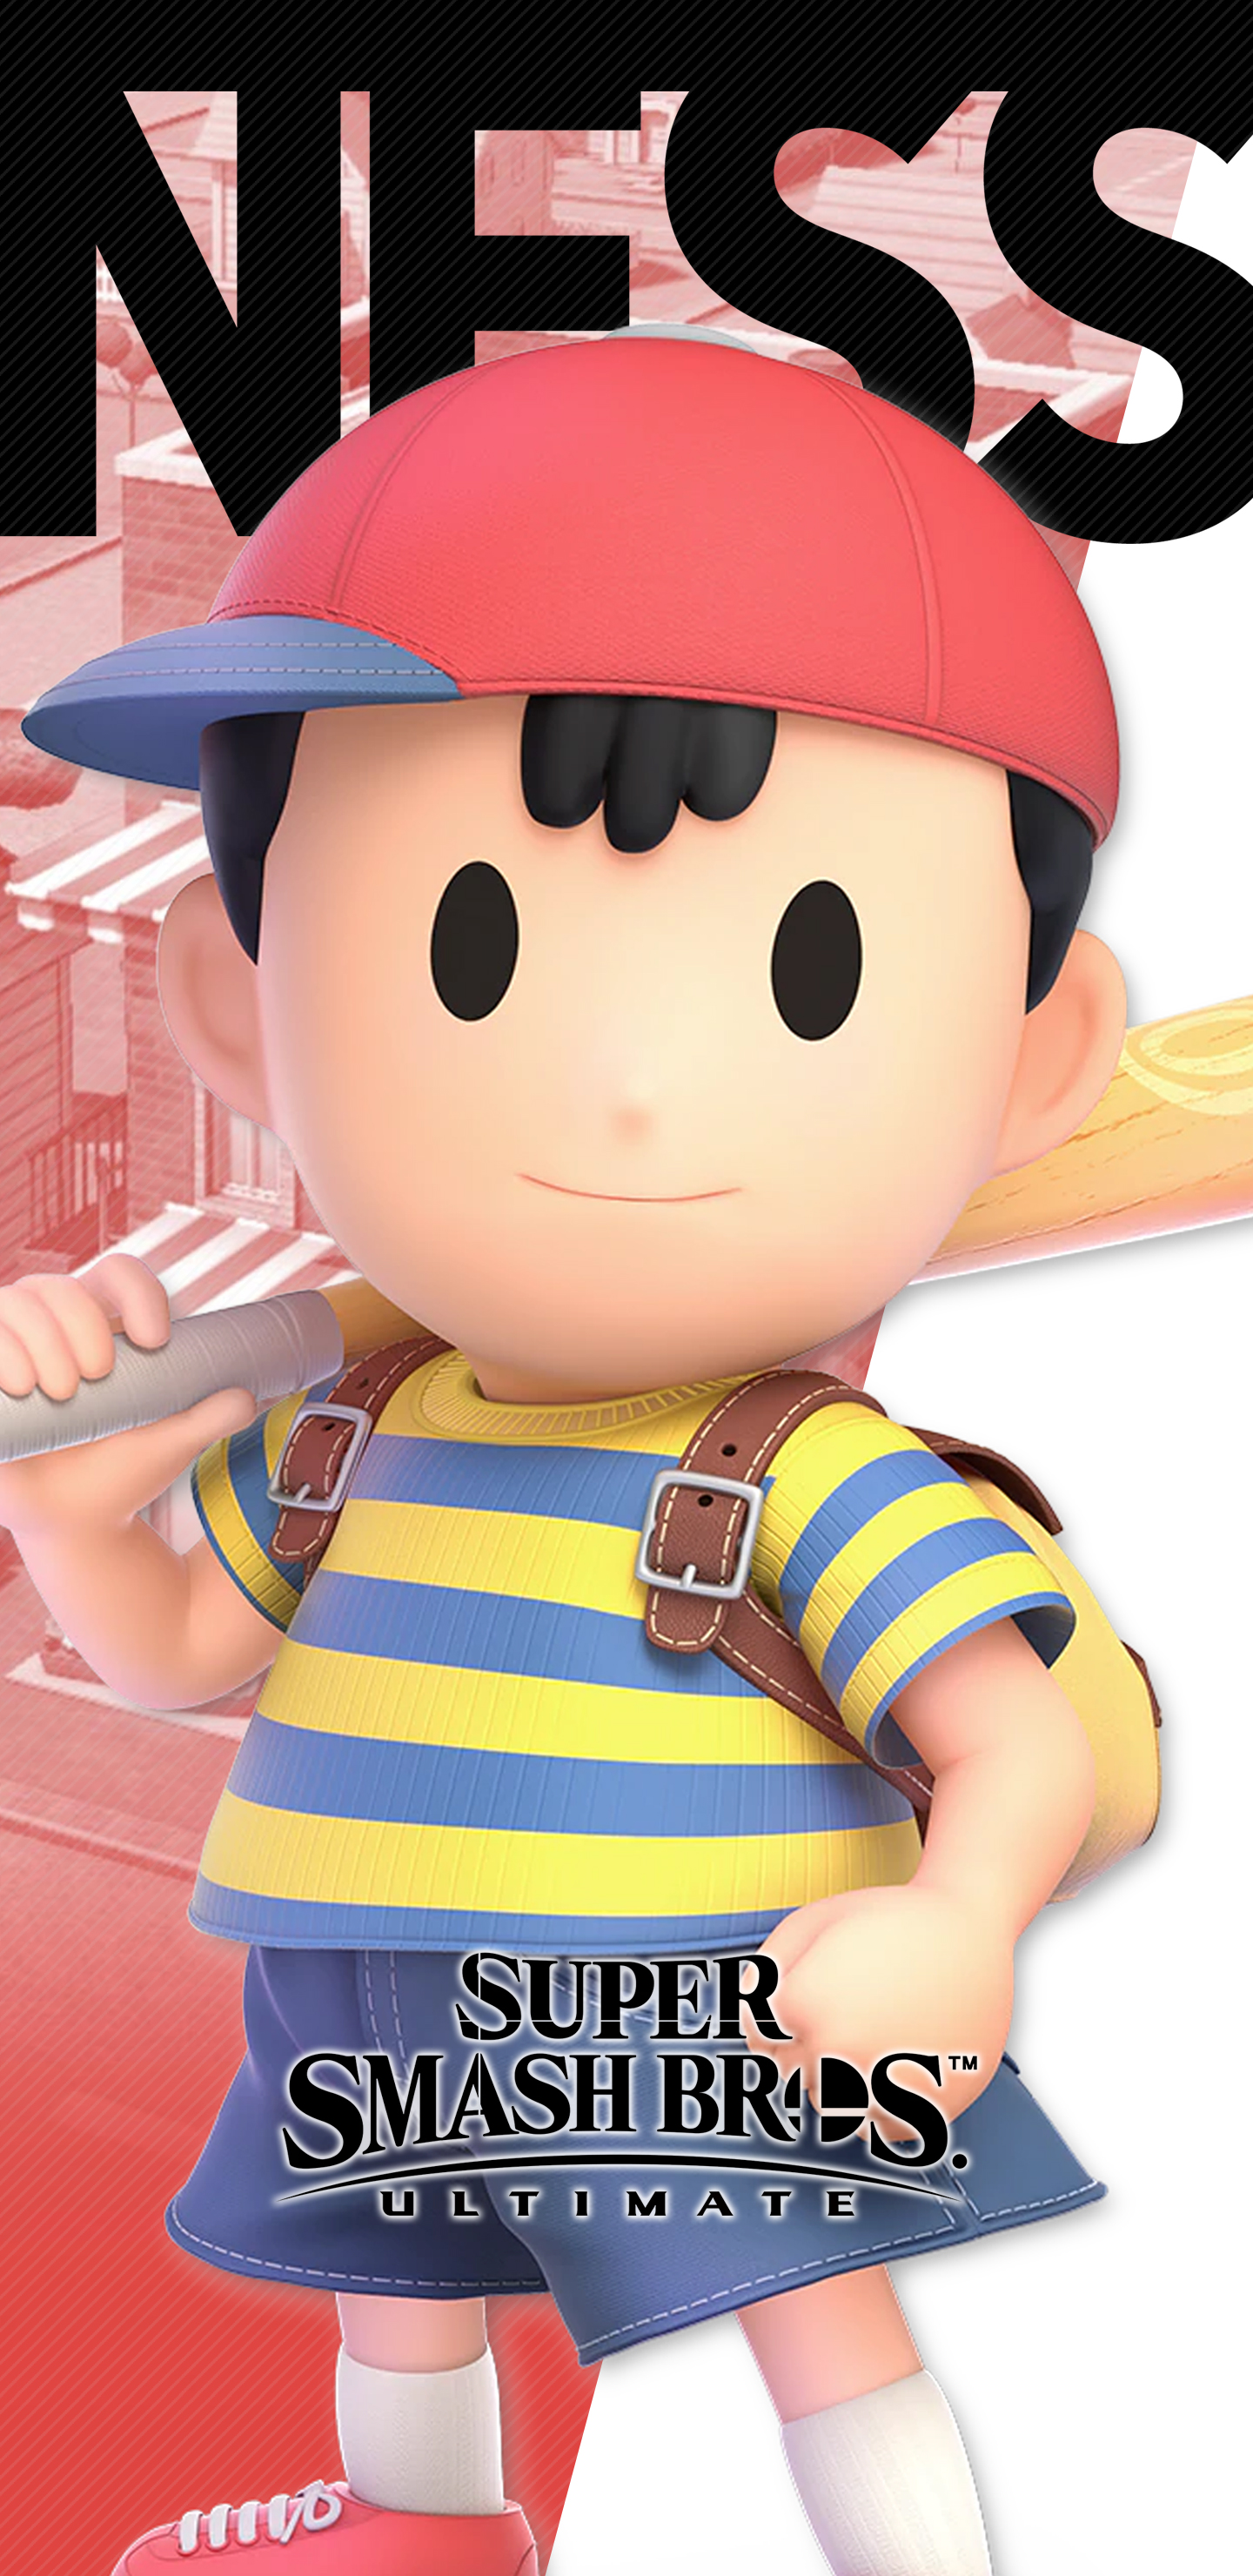 Super Smash Bros Ultimate Ness Wallpapers Cat With Monocle